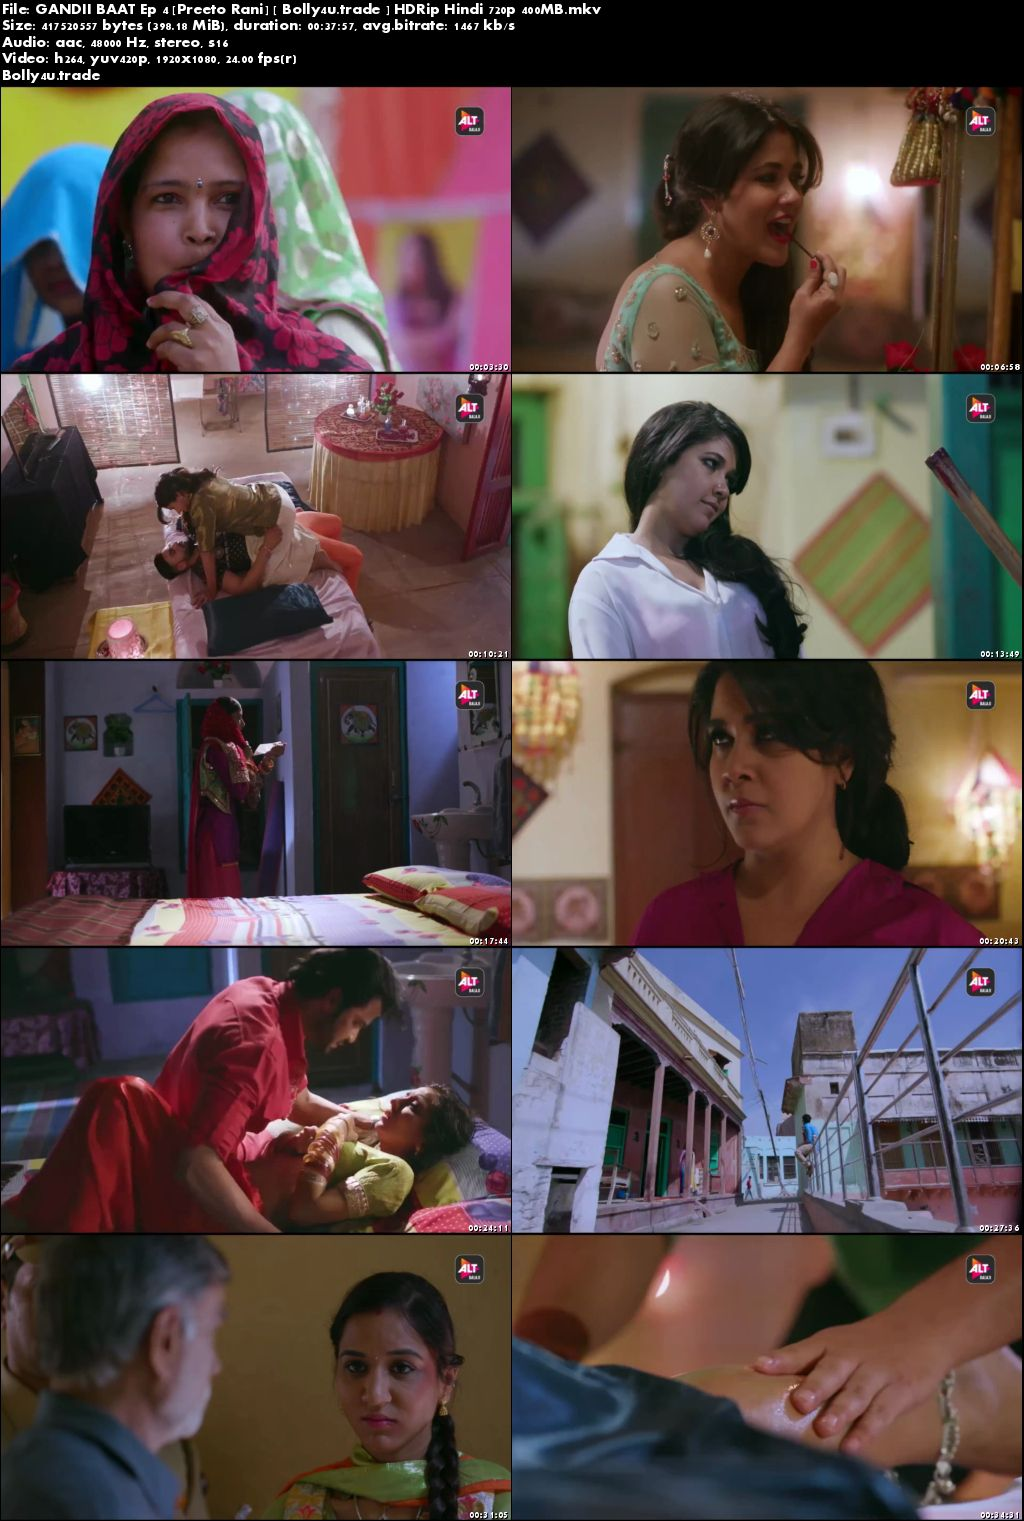 Gandii Baat Ep 04 Preeto Rani HDRip 400MB Hindi (720p►1280 x 720 pixels) Download